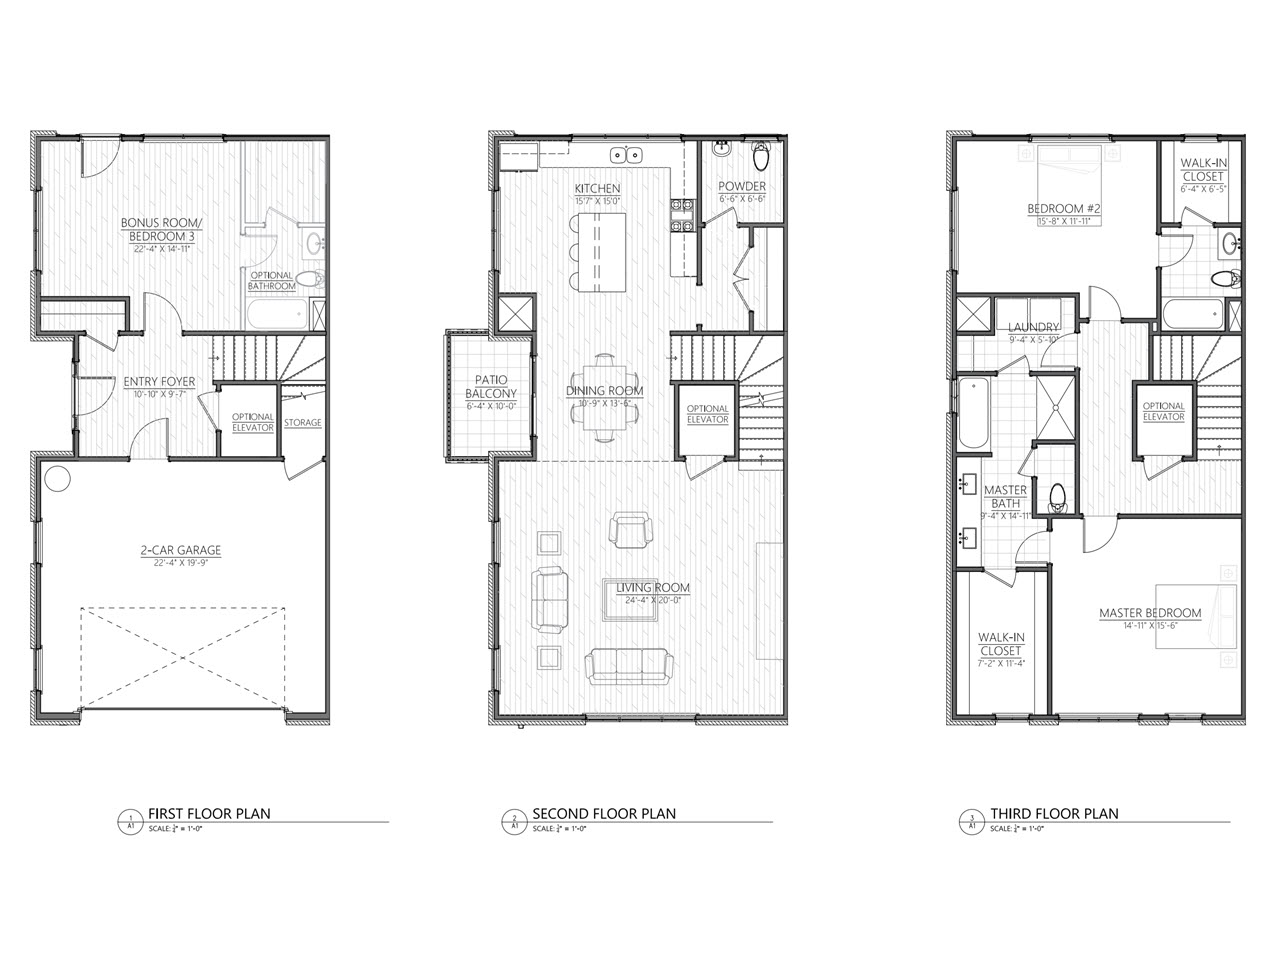 new unit D floor plan.jpg